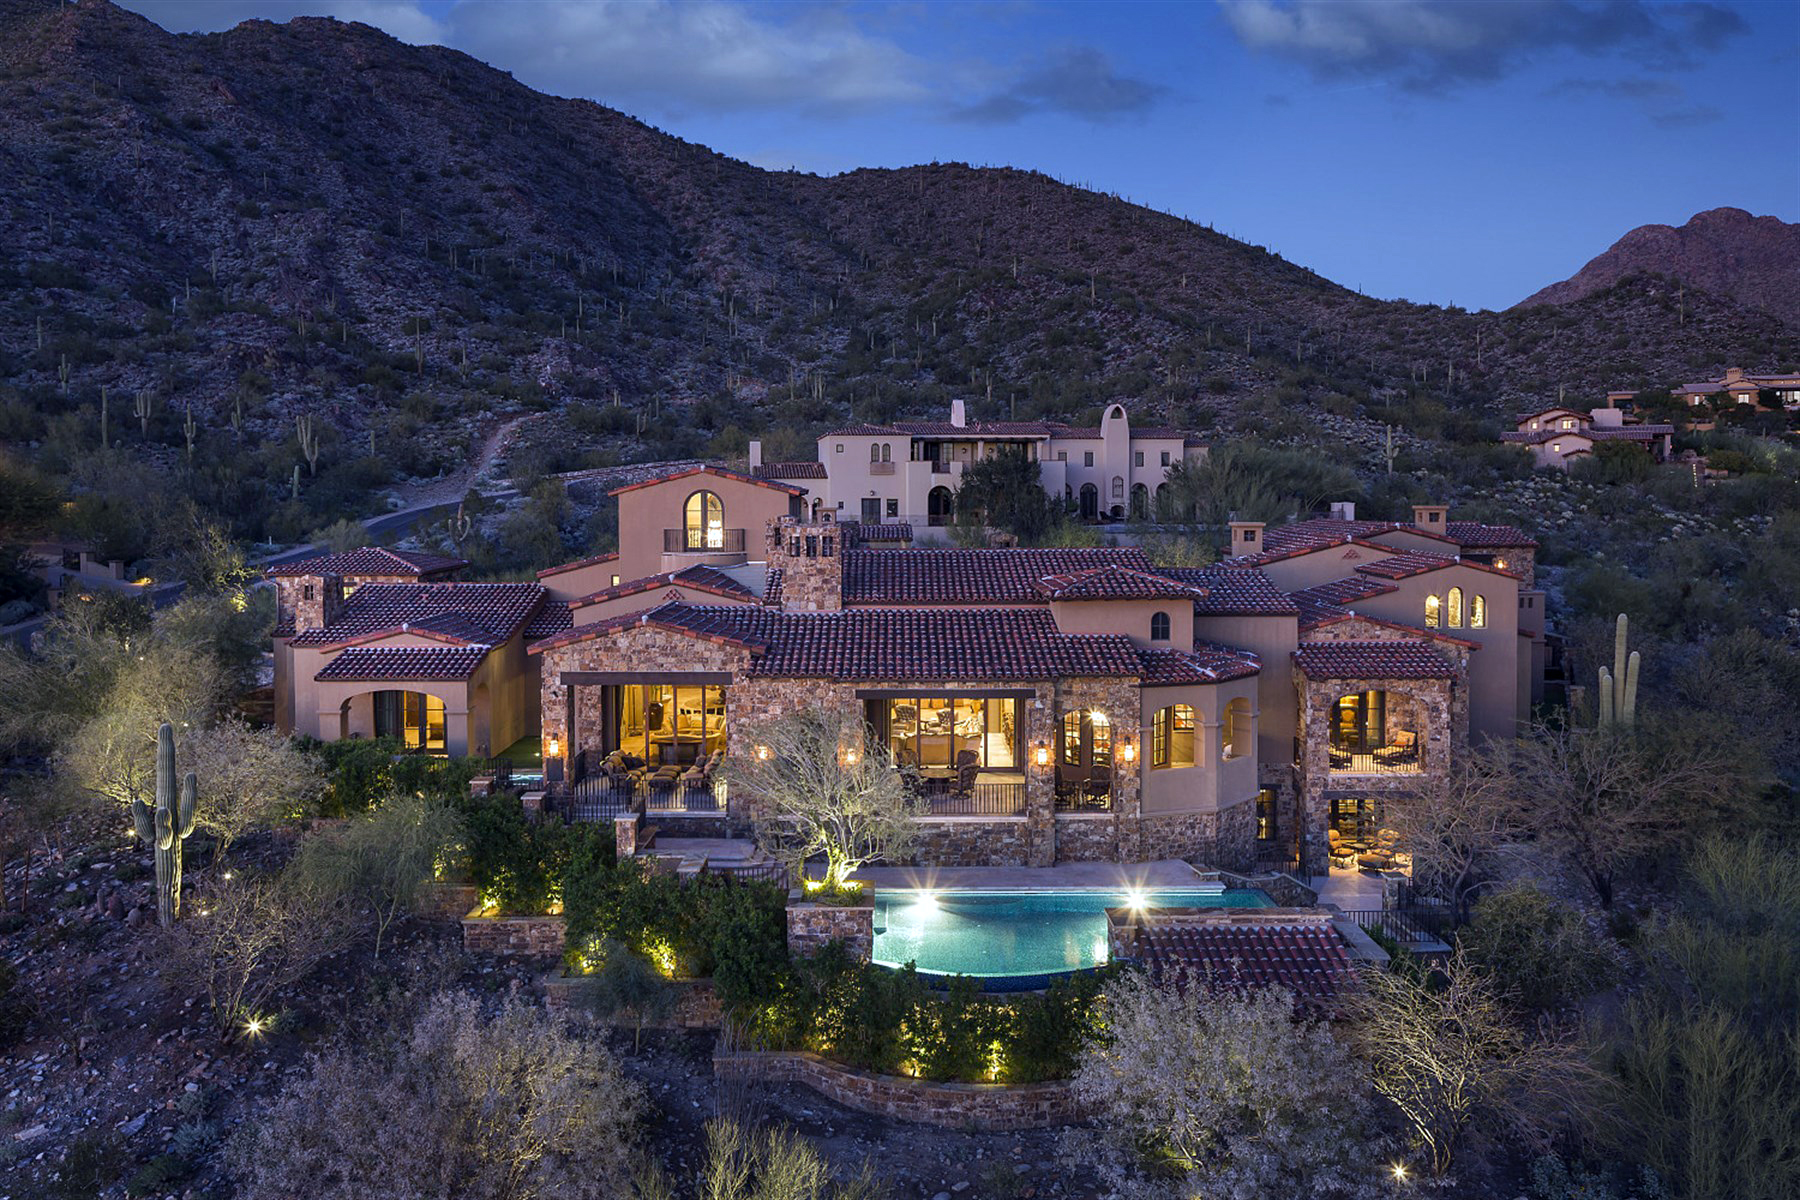 Частный односемейный дом для того Продажа на Exquisite European Manor in The Exclusive Upper Canyon at Silverleaf 20913 N 104th Street #1488 Scottsdale, Аризона 85255 Соединенные Штаты